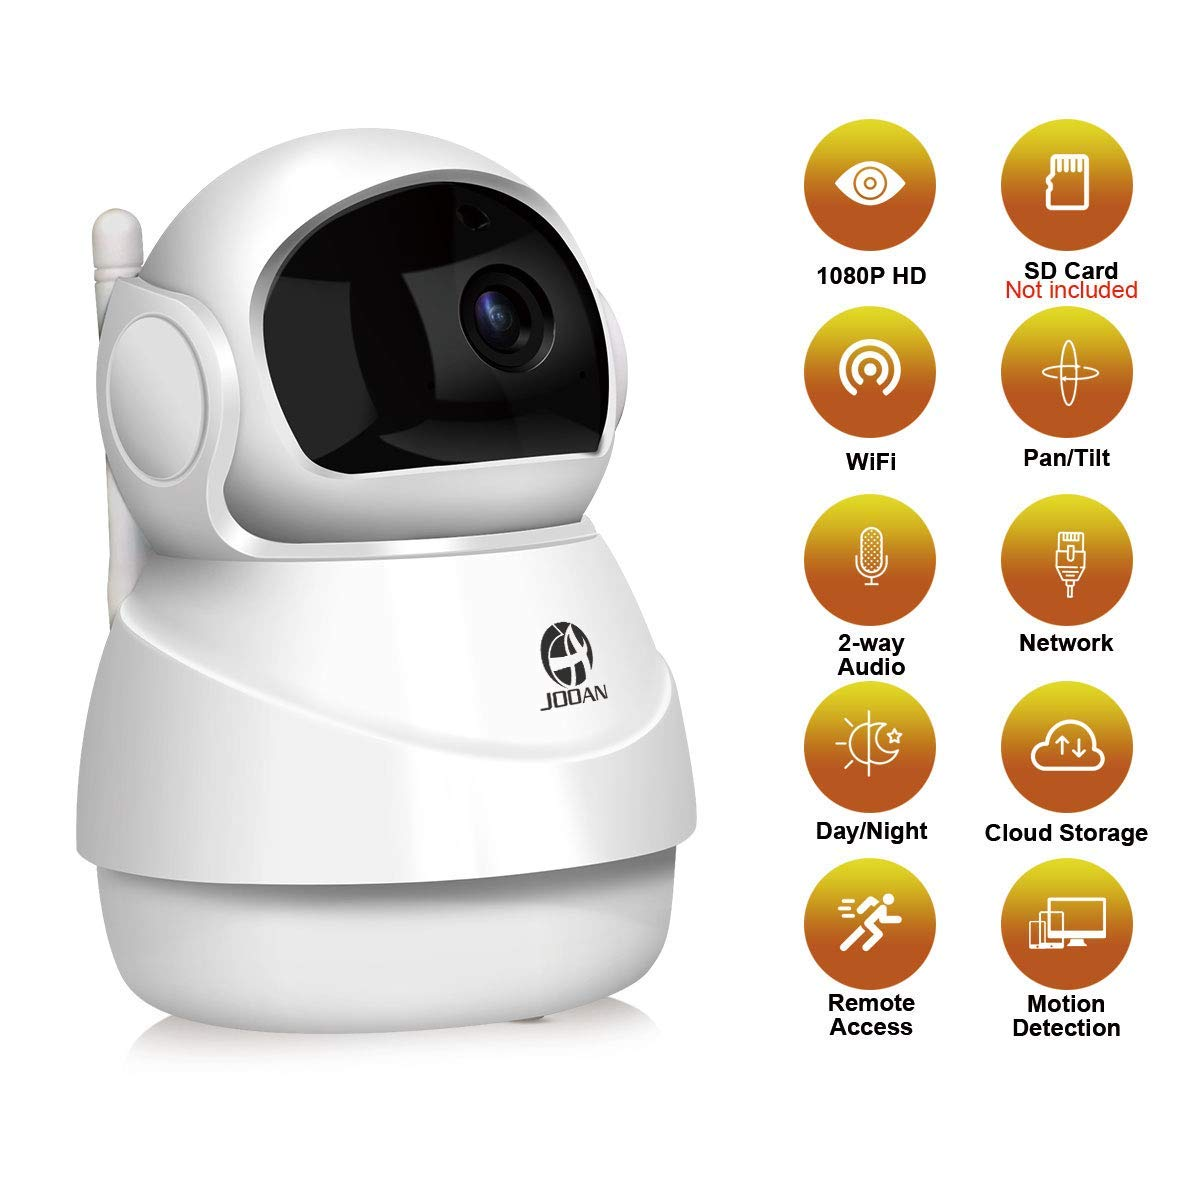 1080P Security Camera WiFi Home Security Surveillance System Wireless 2MP HD IP Camera for Pet Elder Nanny Baby Monitor Work with Two Way Audio Night Vision Motion Detection Pan/Tilt Remote (White)